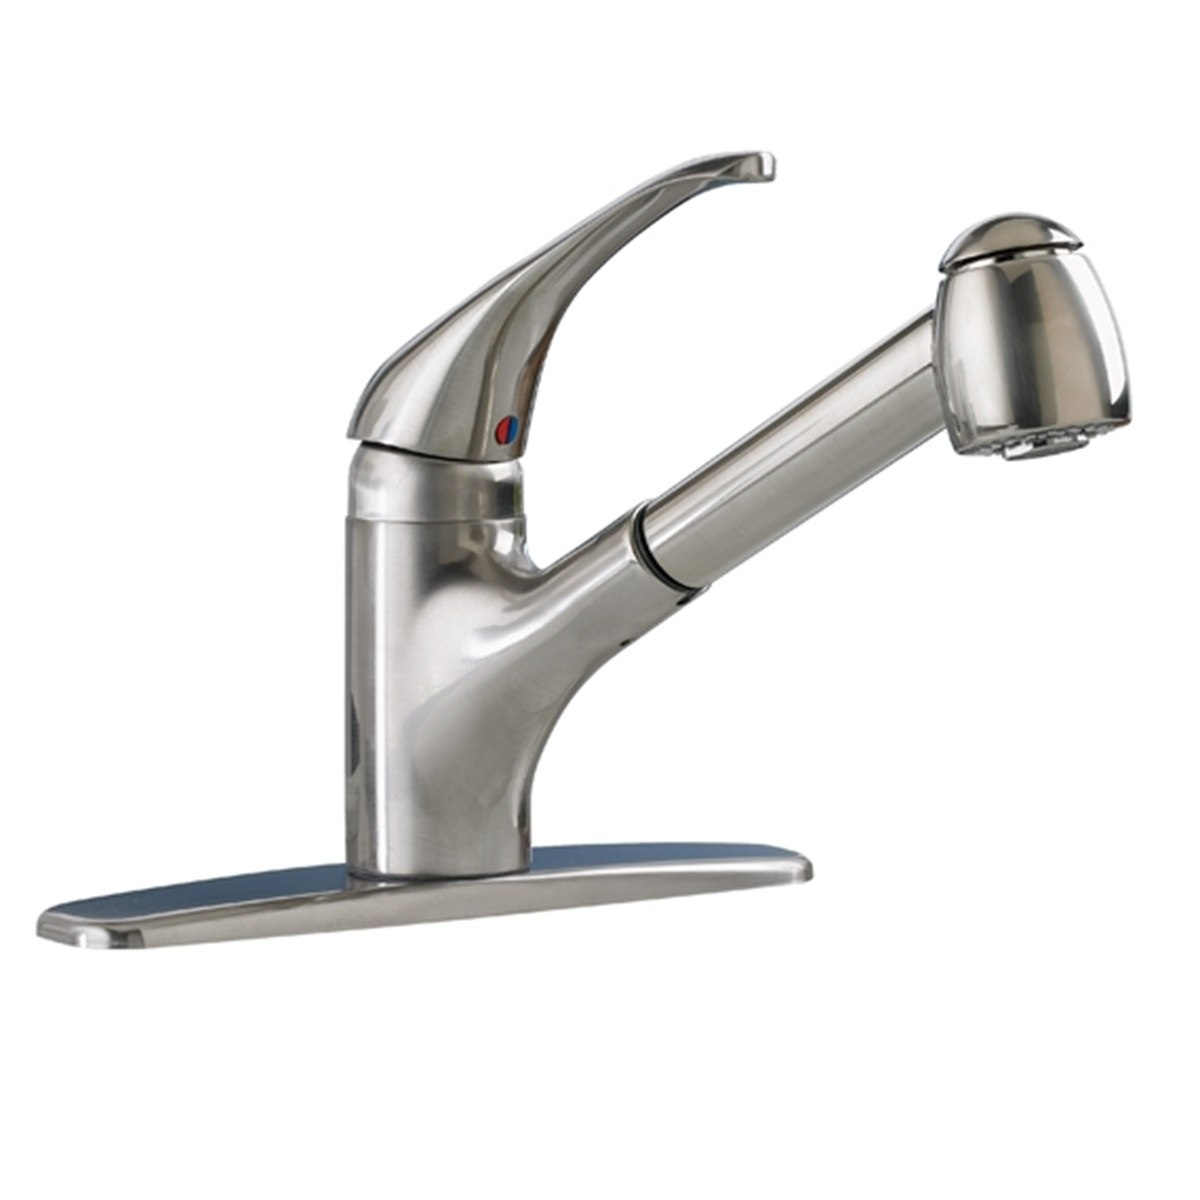 American Standard 4205 104 Reliant 1 Handle Pull Out Kitchen Faucet 2 2 Gpm 4205 104 075 4205104075 4205 104 002